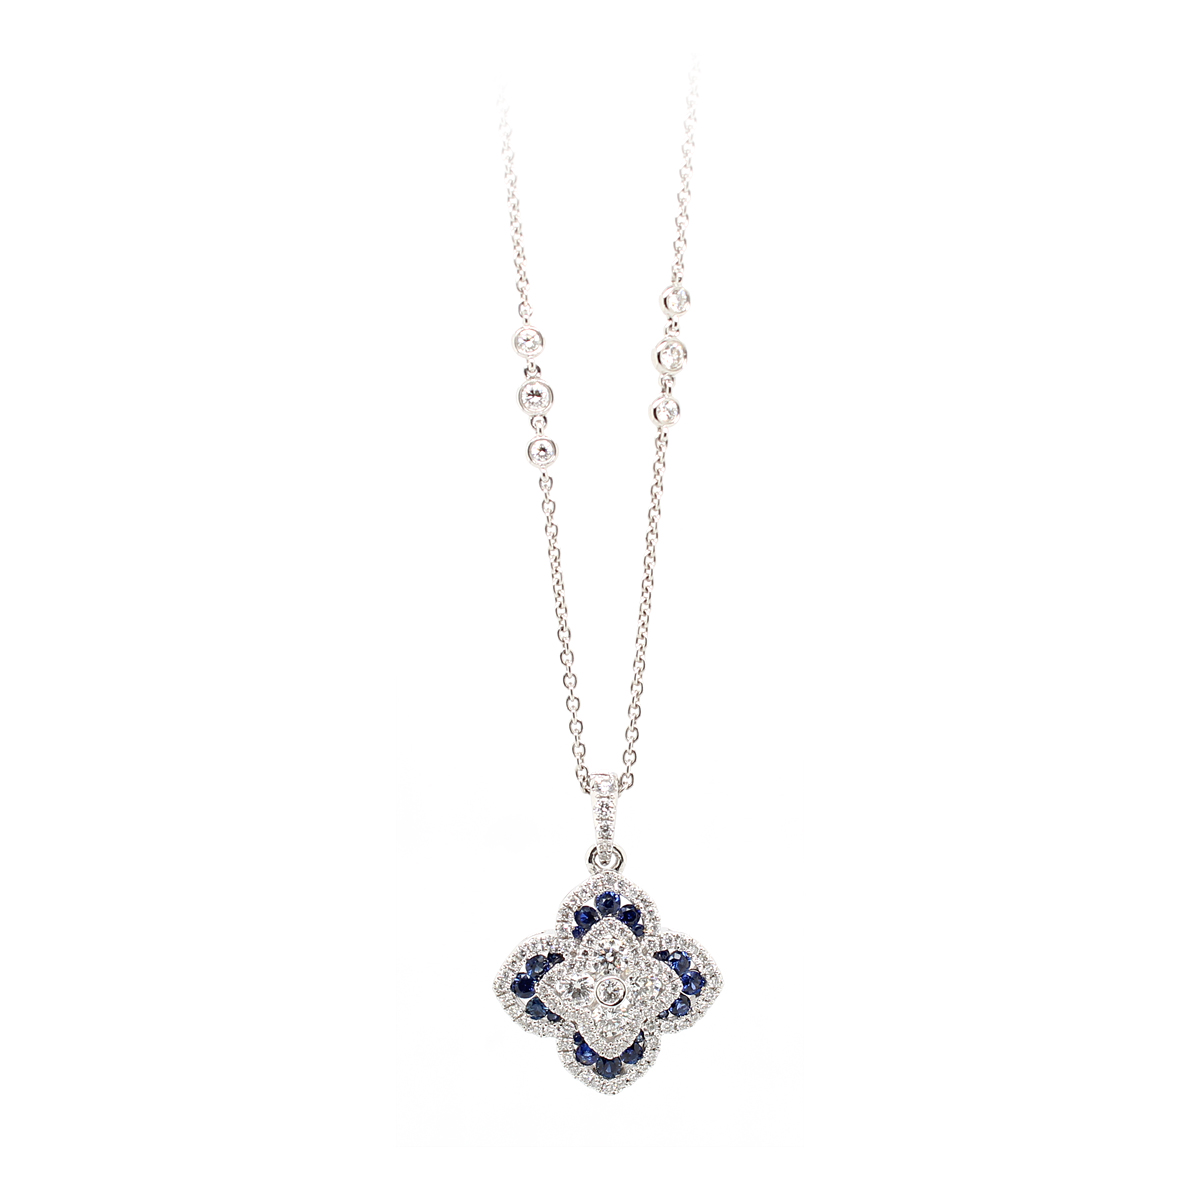 Charles Krypell 18 Karat White Gold Diamond and Blue Sapphire Pendant Necklace